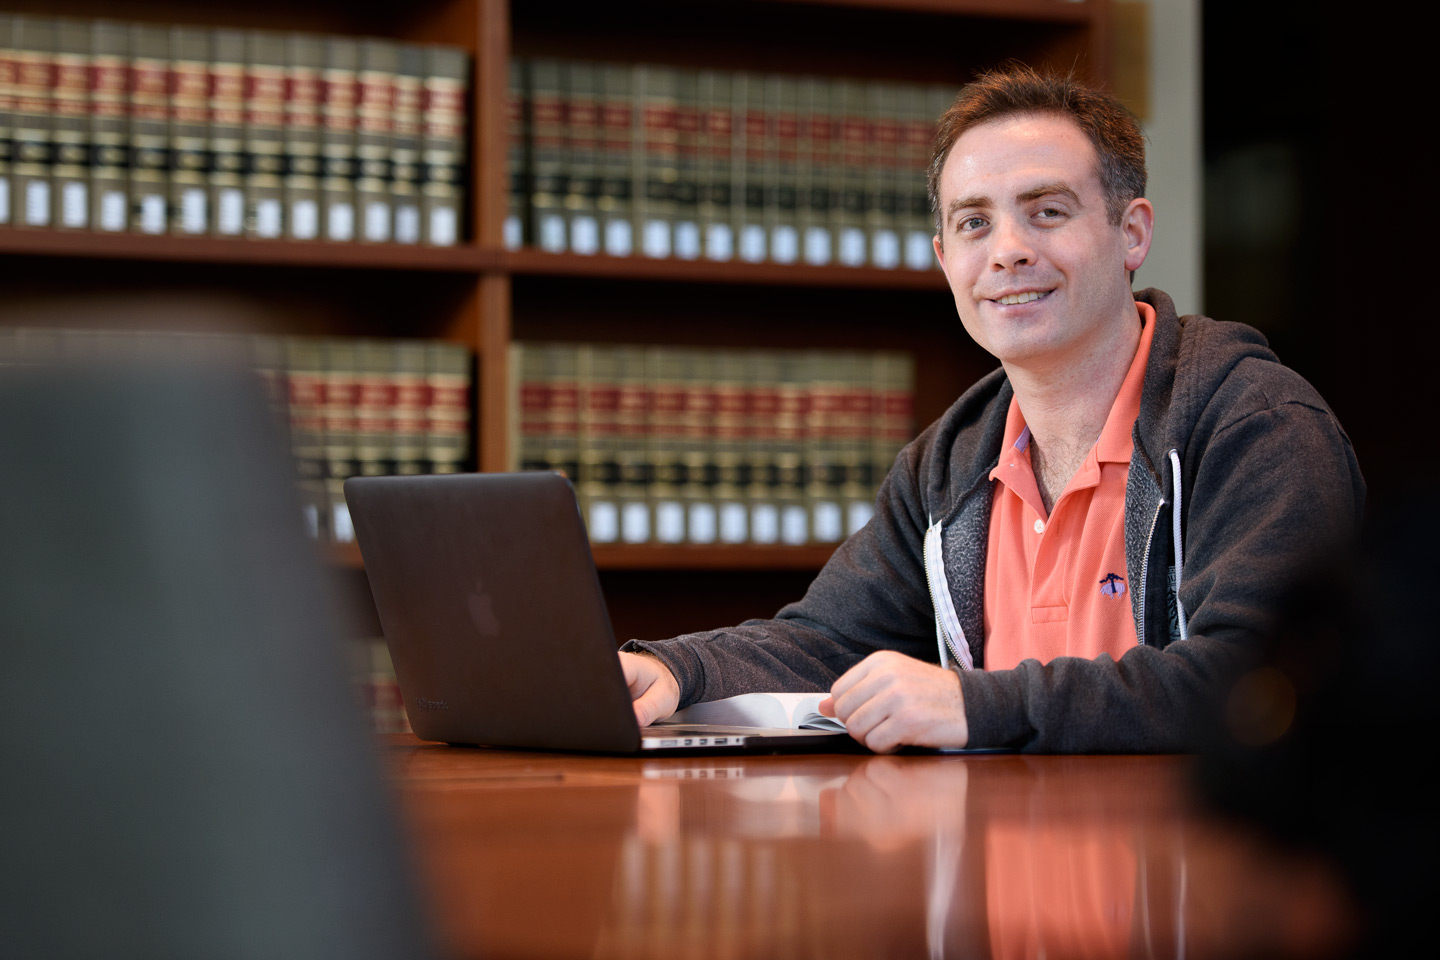 Veteran and law student Benjamin E. Haas, studying at the Law School.